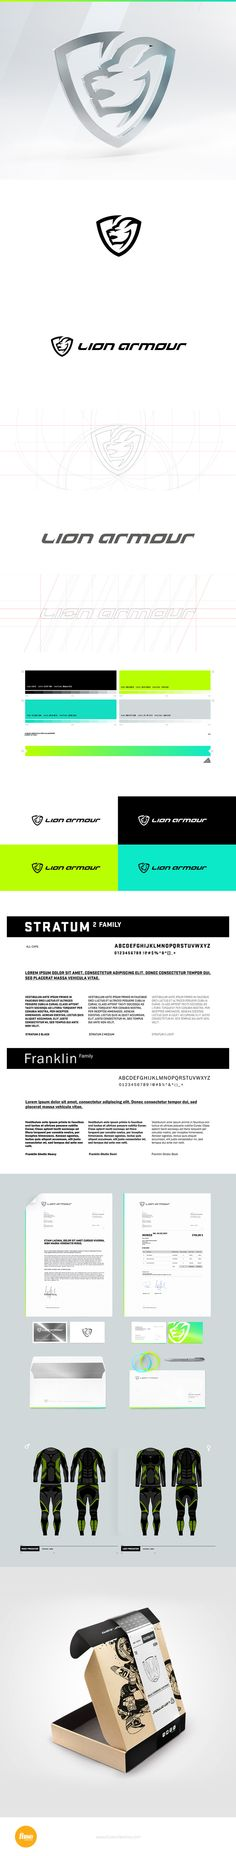 Comprehensive branding project created for start-up clothing company Lion Armour, producer of high quality thermo-active underwear.